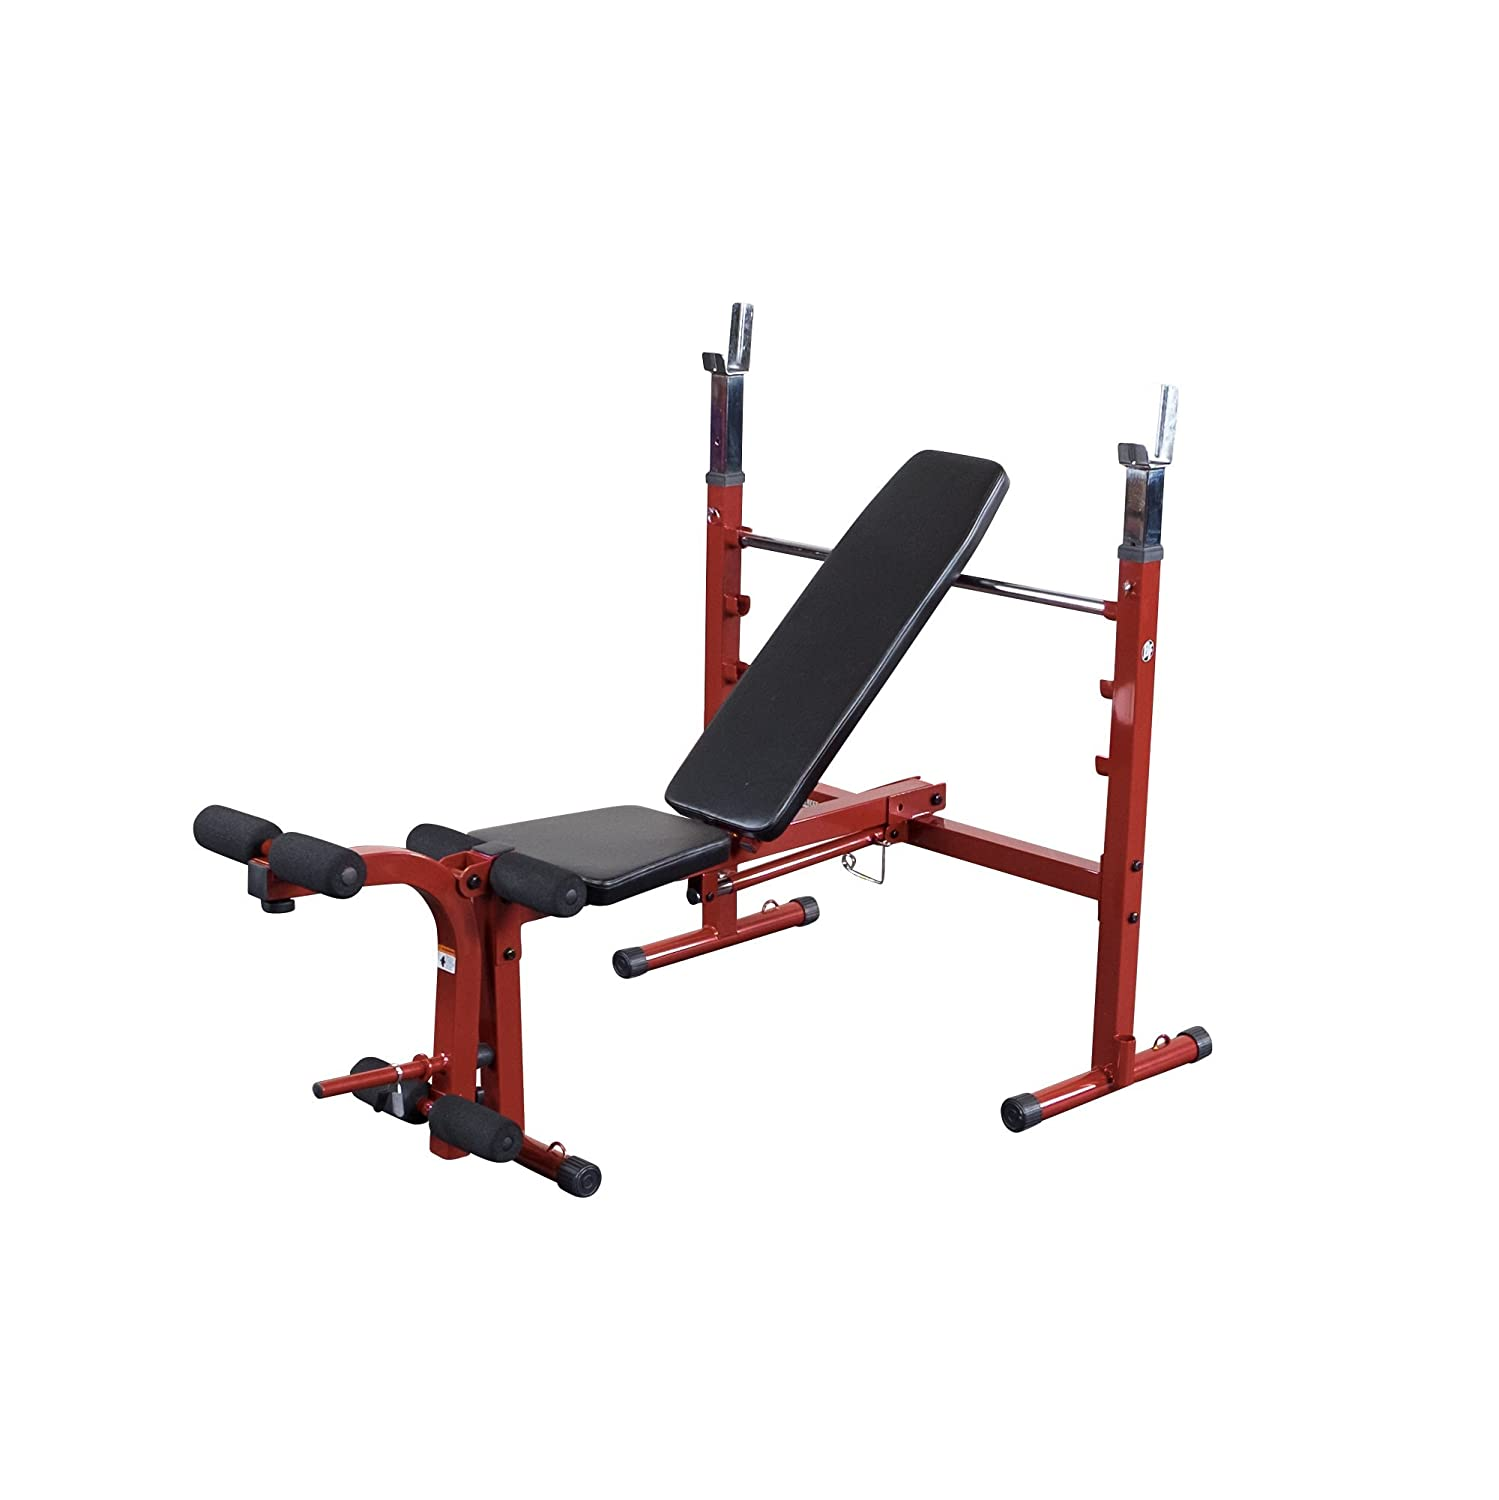 Best Fitness Olympic Bench foldable, BFOB10